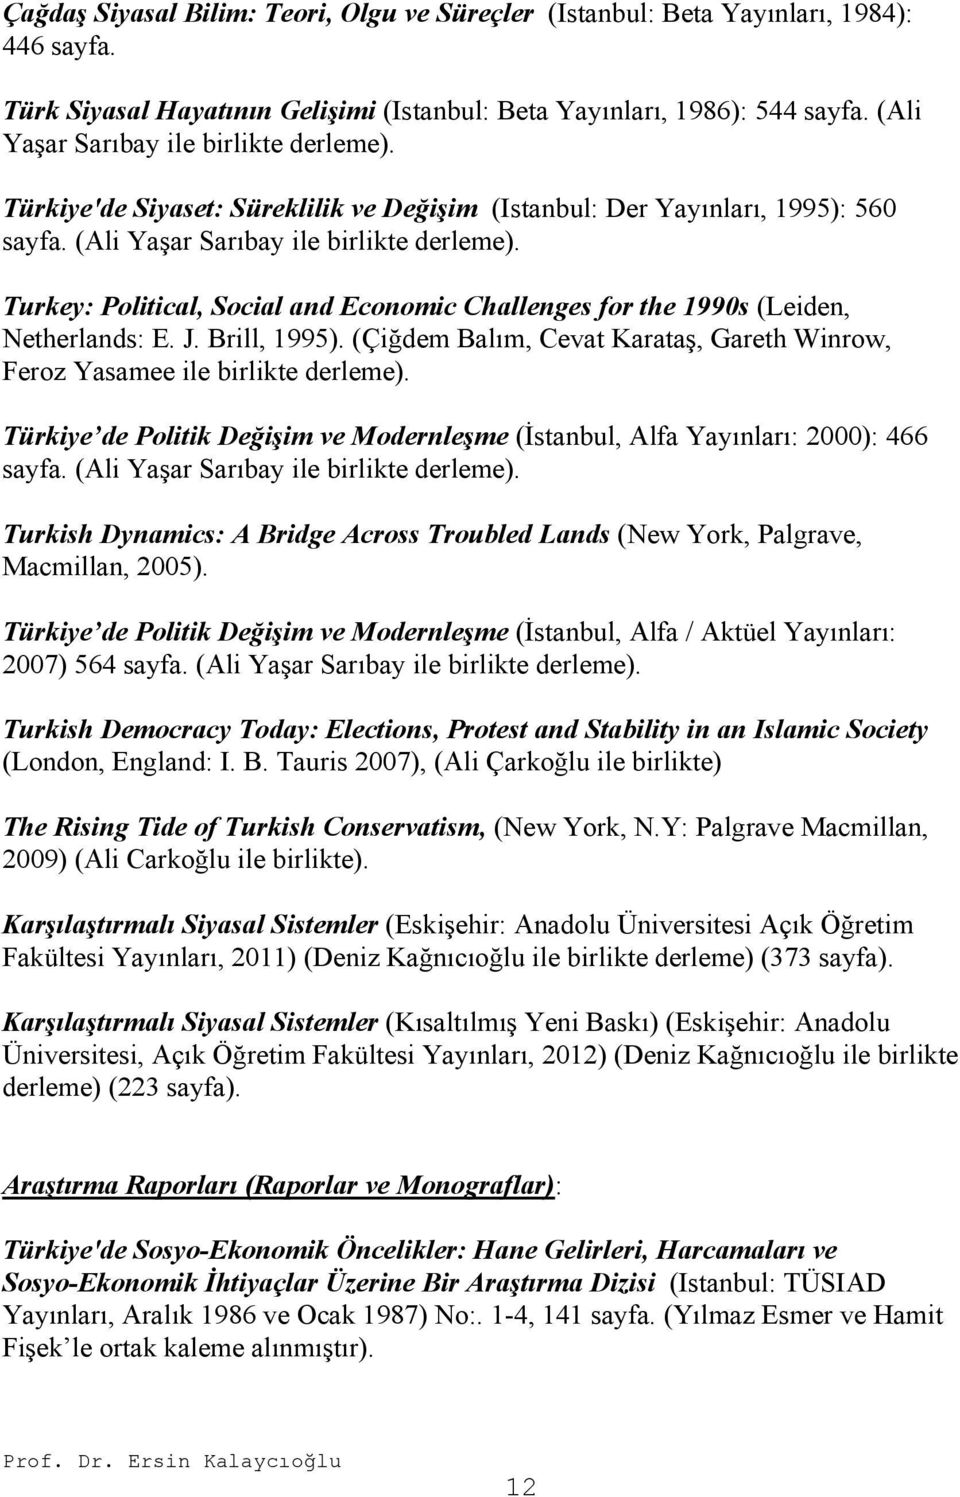 Turkey: Political, Social and Economic Challenges for the 1990s (Leiden, Netherlands: E. J. Brill, 1995). (Çiğdem Balım, Cevat Karataş, Gareth Winrow, Feroz Yasamee ile birlikte derleme).